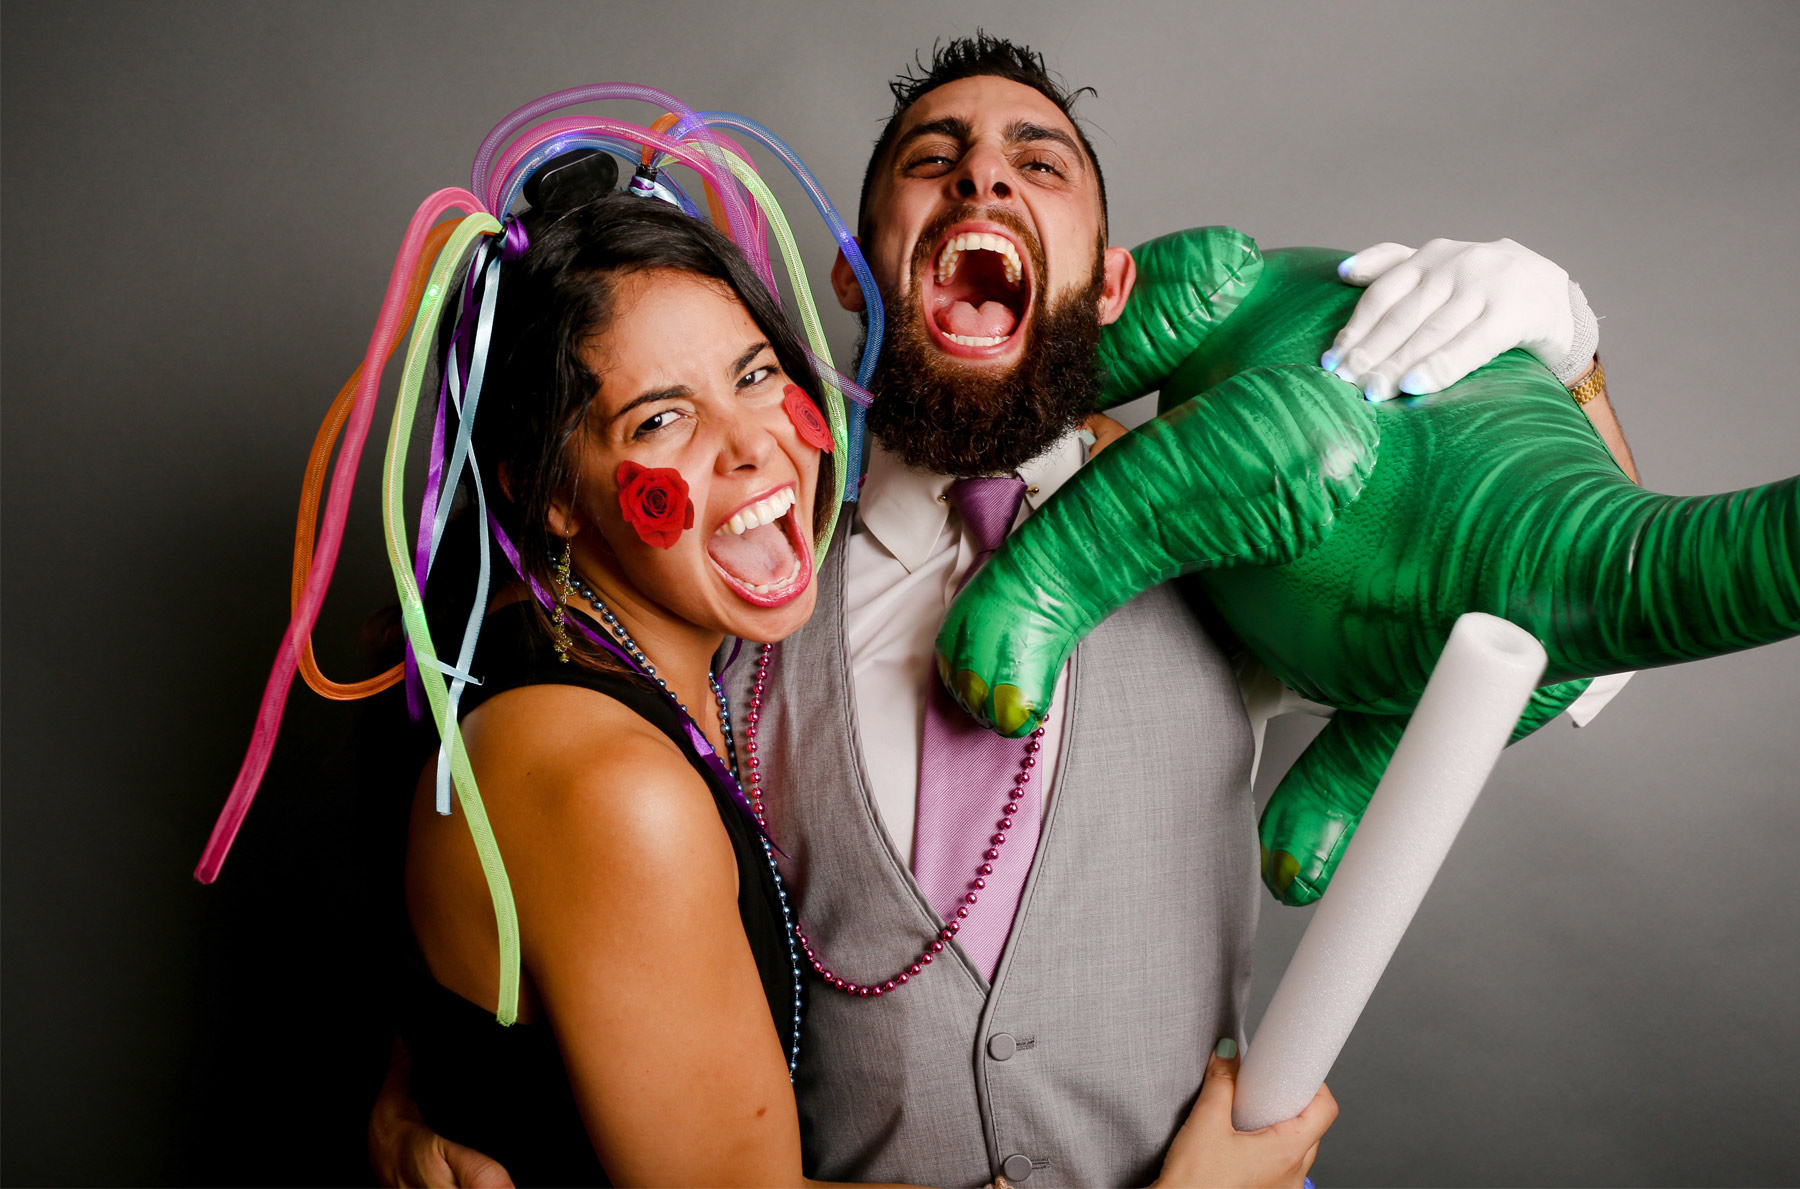 06-Minneapolis-Minnesota-Wedding-Photography-by-Vick-Photography-Crazy-Cam-Reception-Lafayette-Country-Club-Dance.jpg